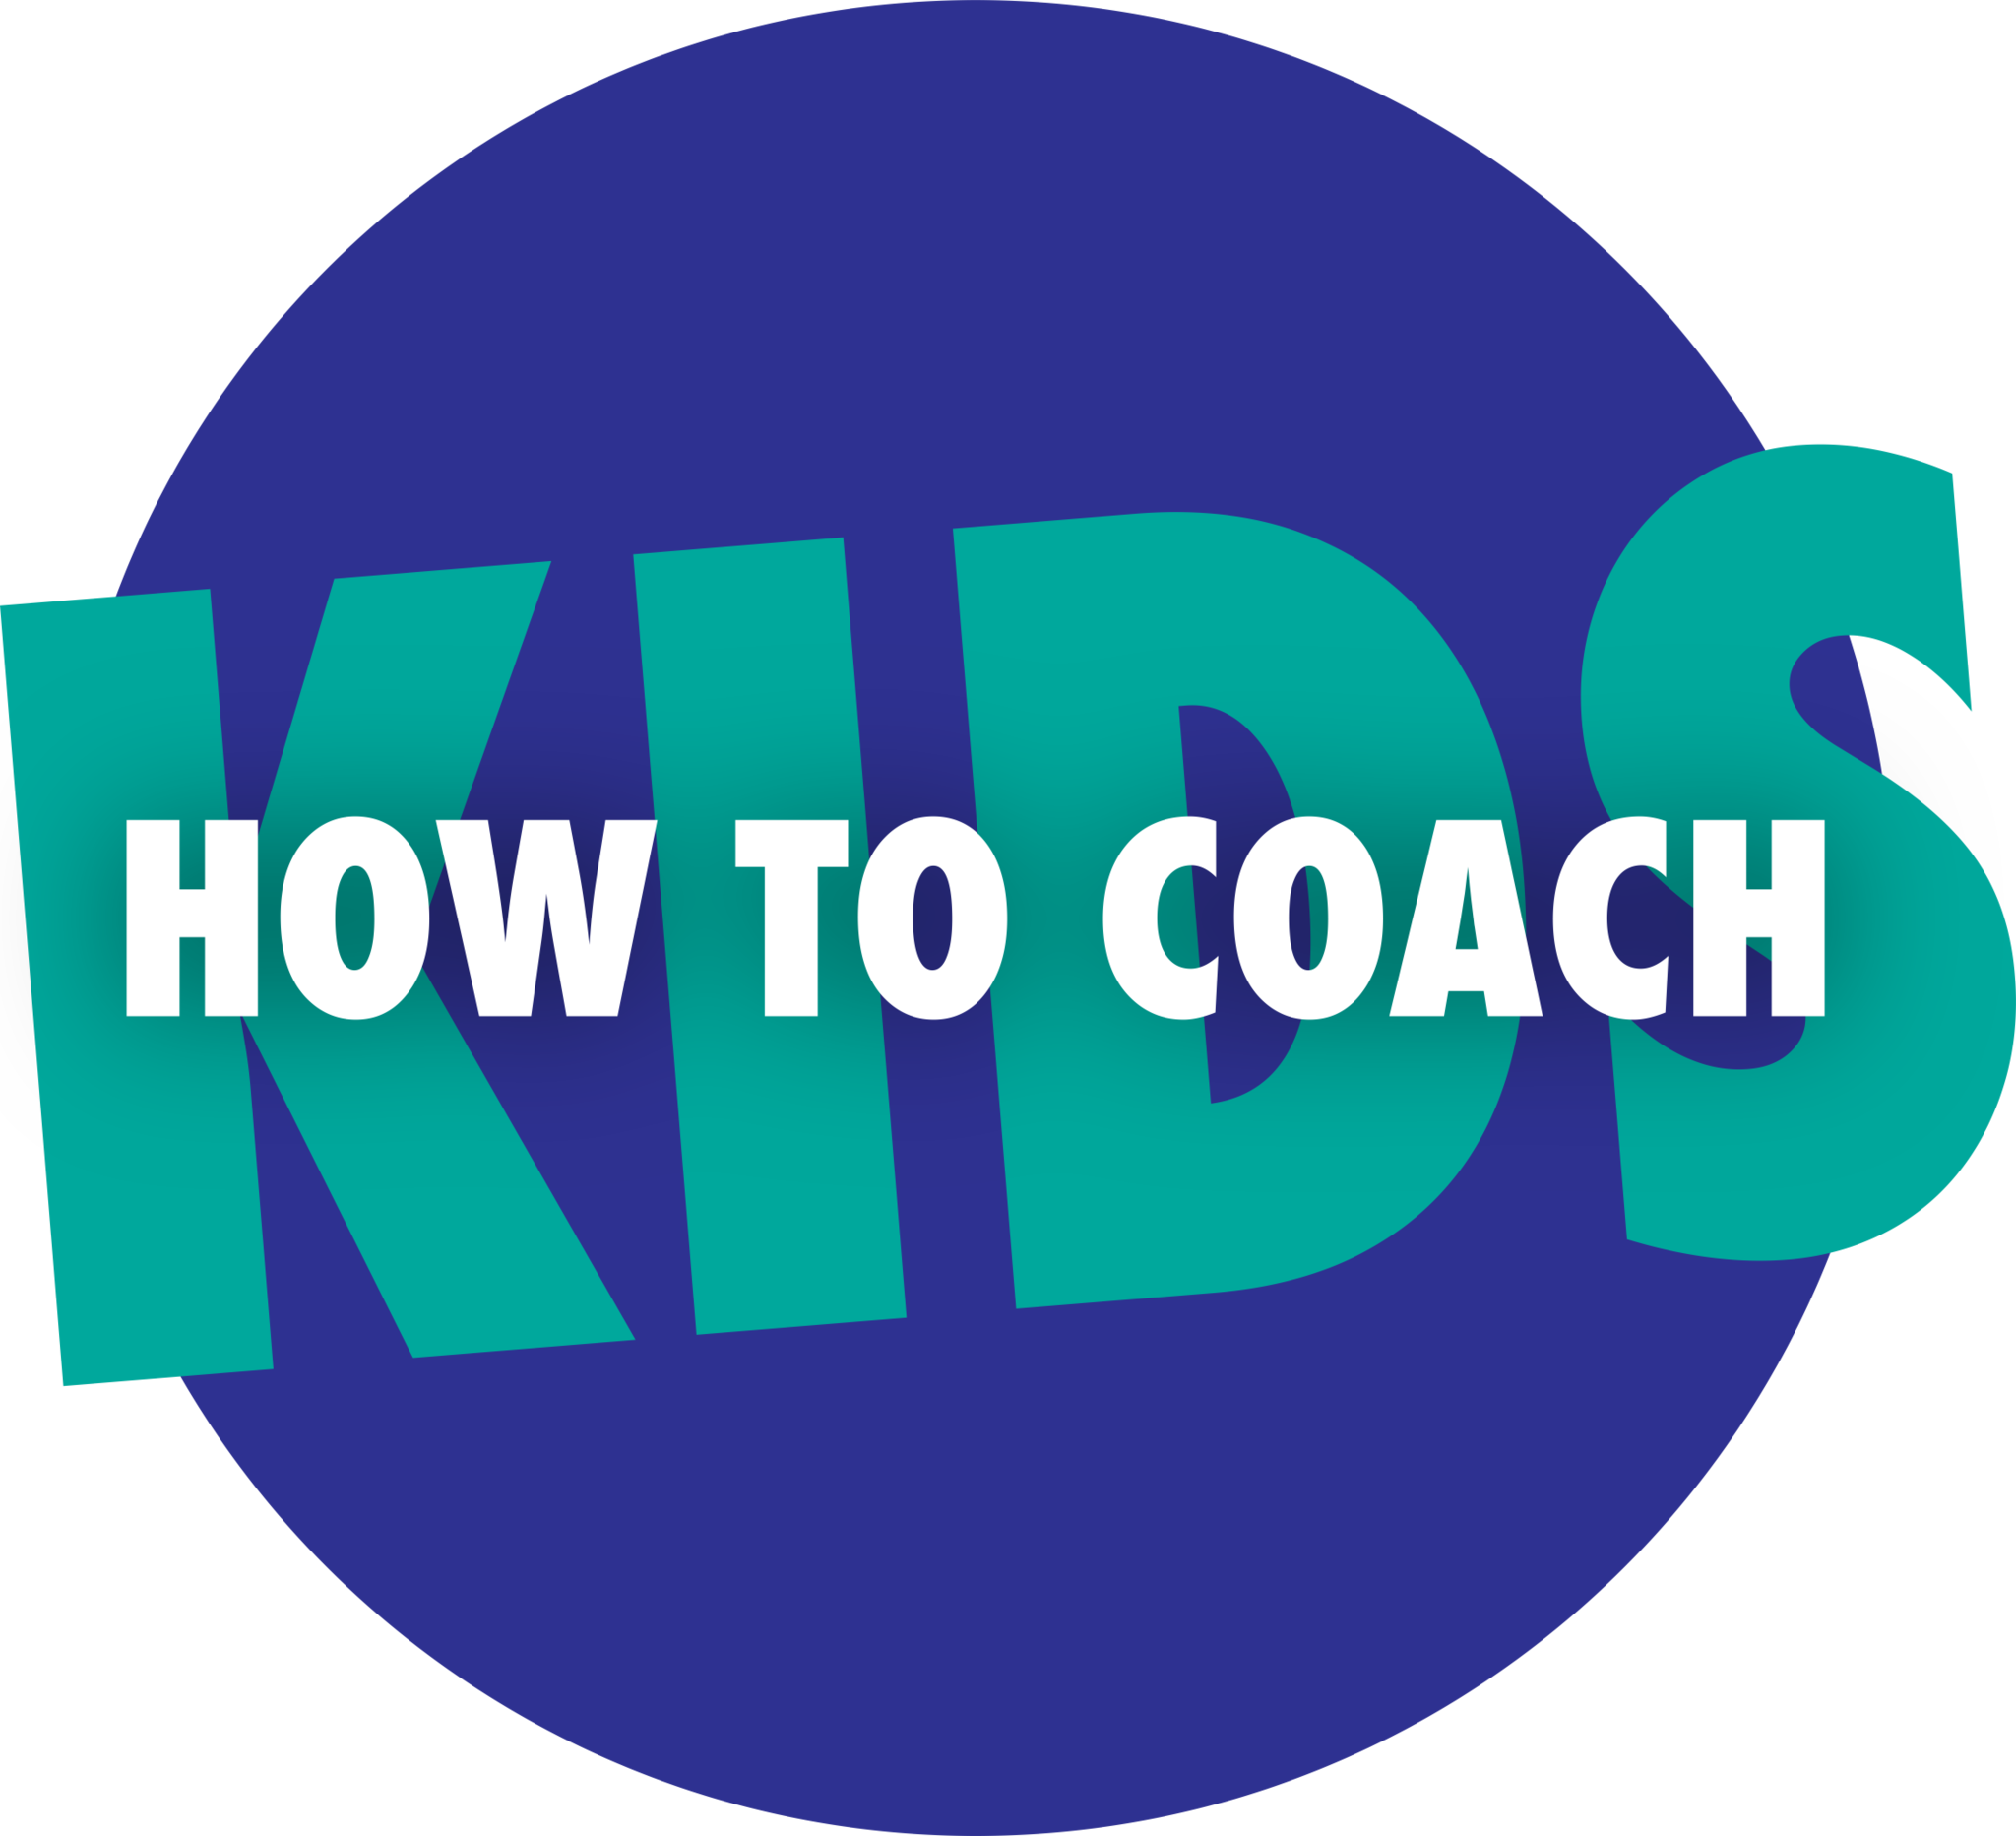 How to Coach Kids - The How to Coach Kids course is a great resource for coaching kids at any age. Take 30 minutes and discover how easy it is to give kids a great experience in sport and play.